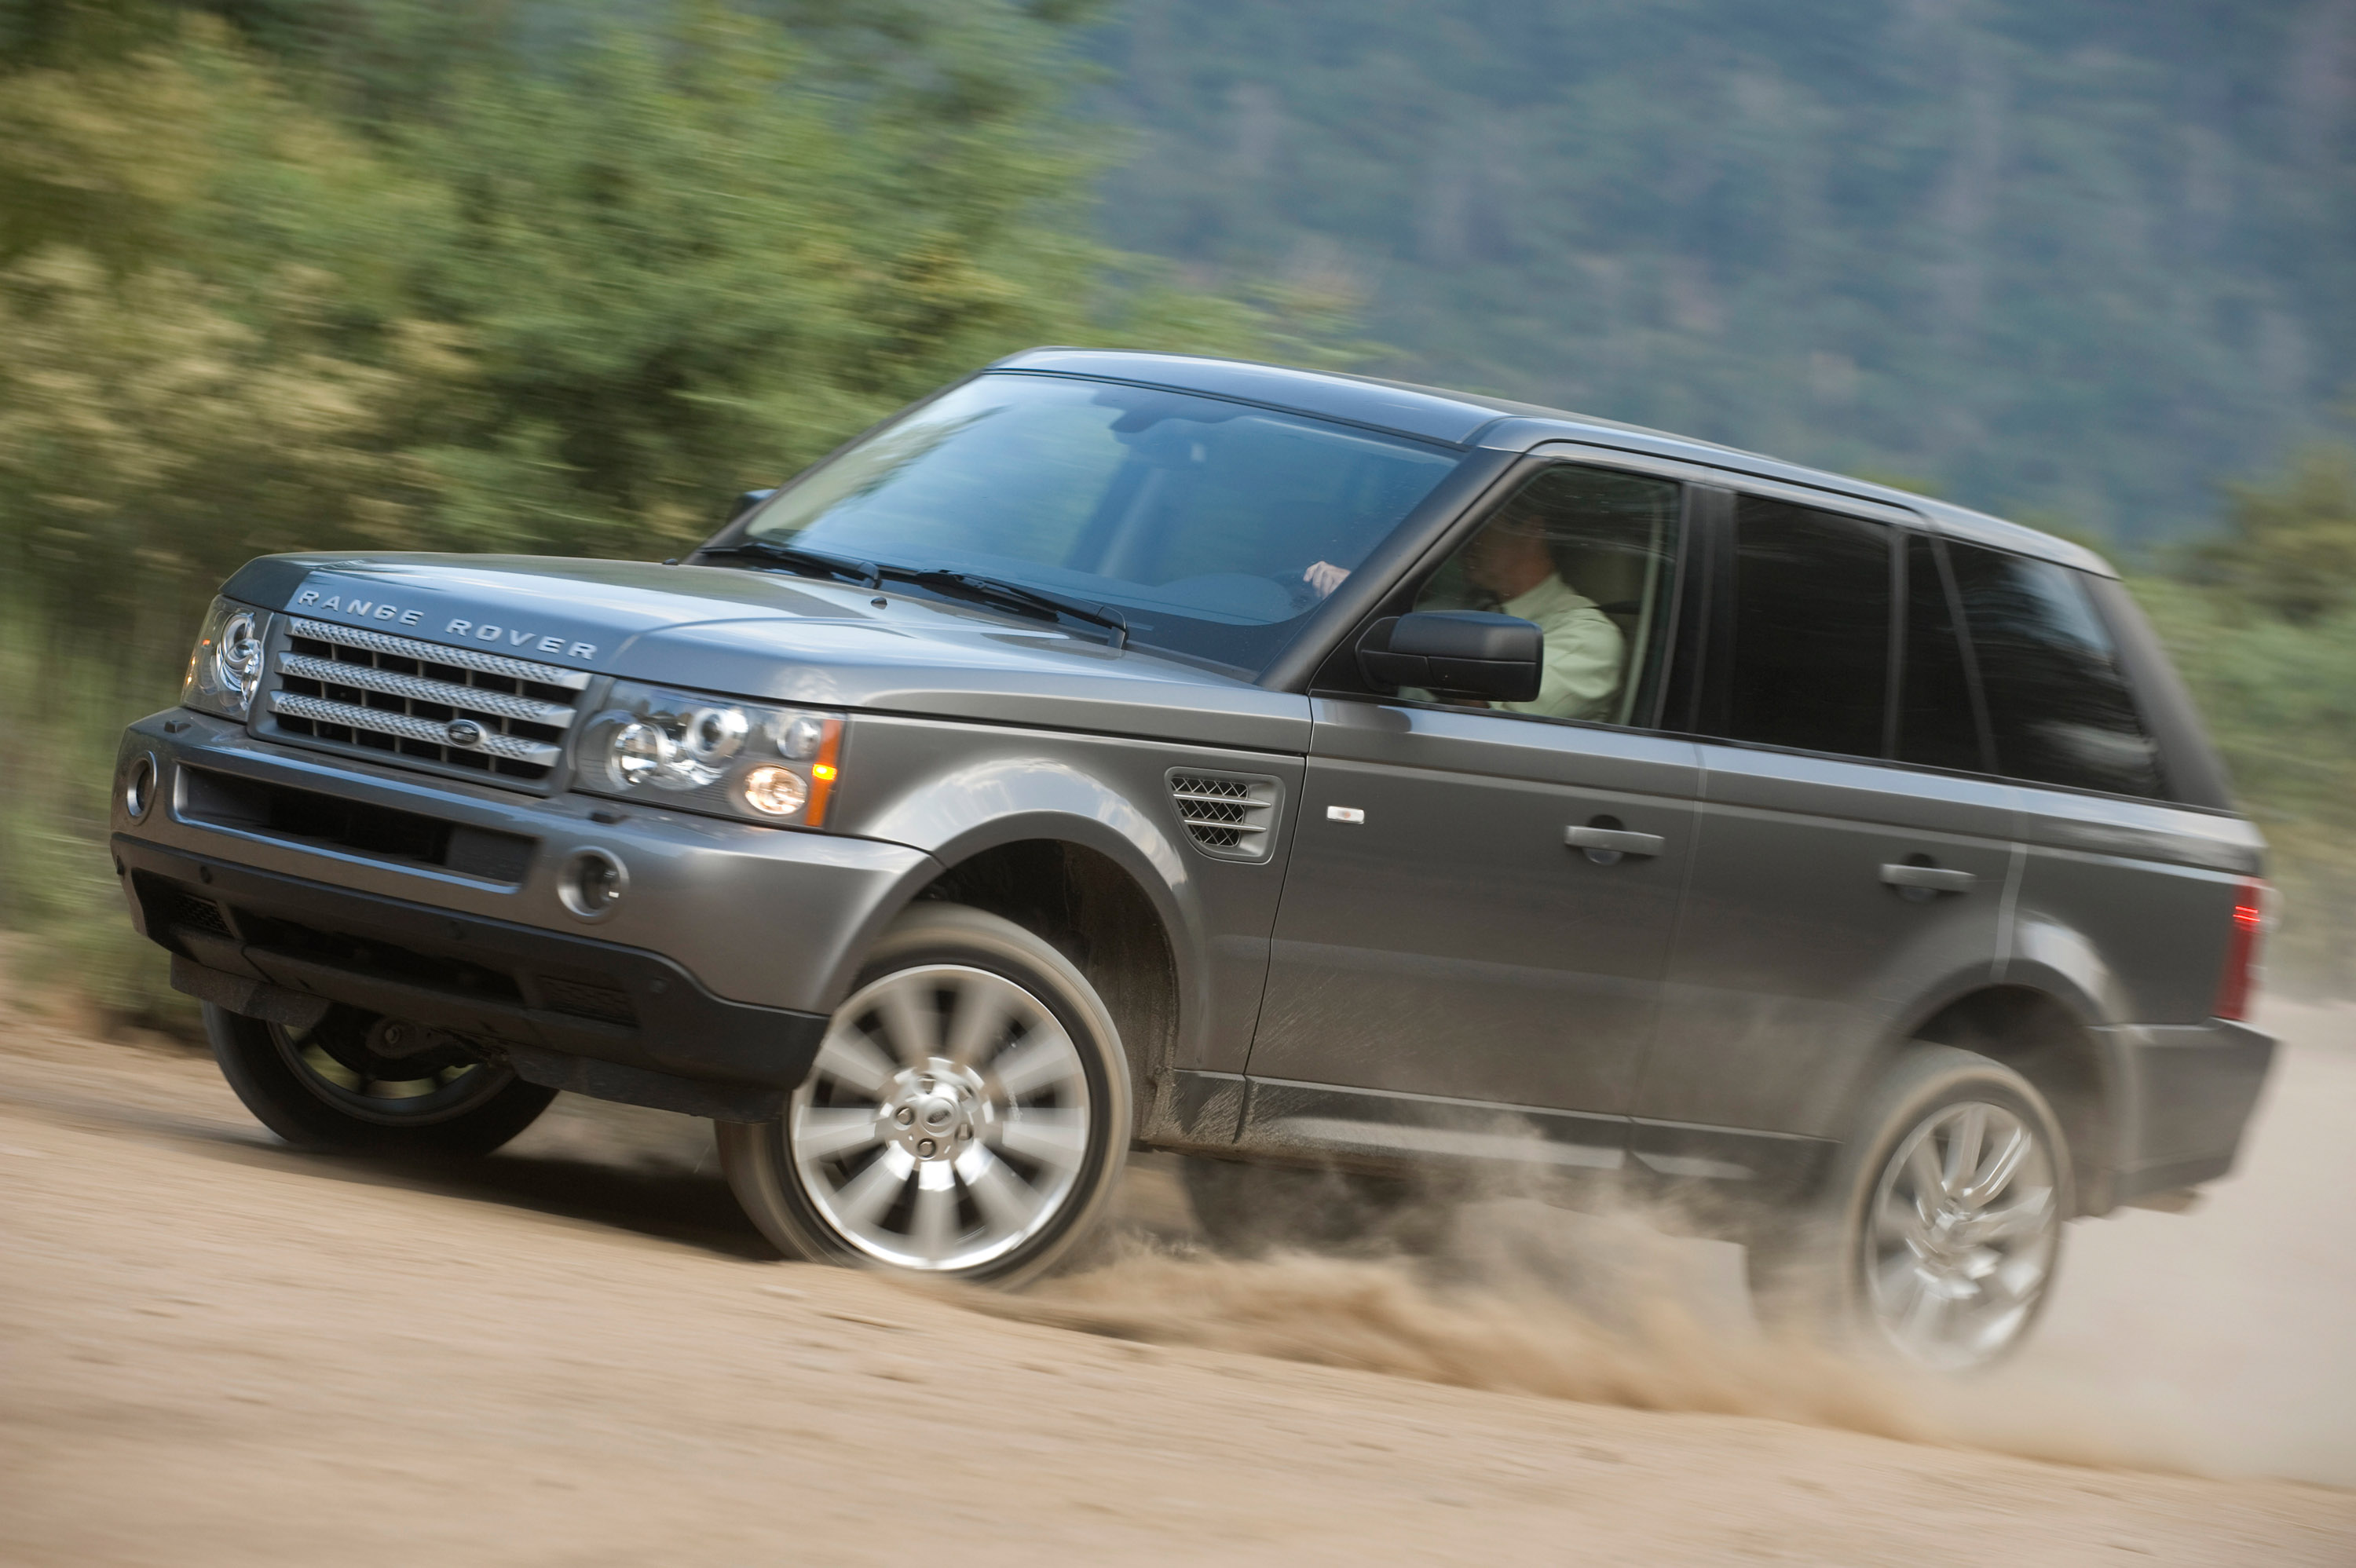 2009 Range Rover Sport Supercharged Picture